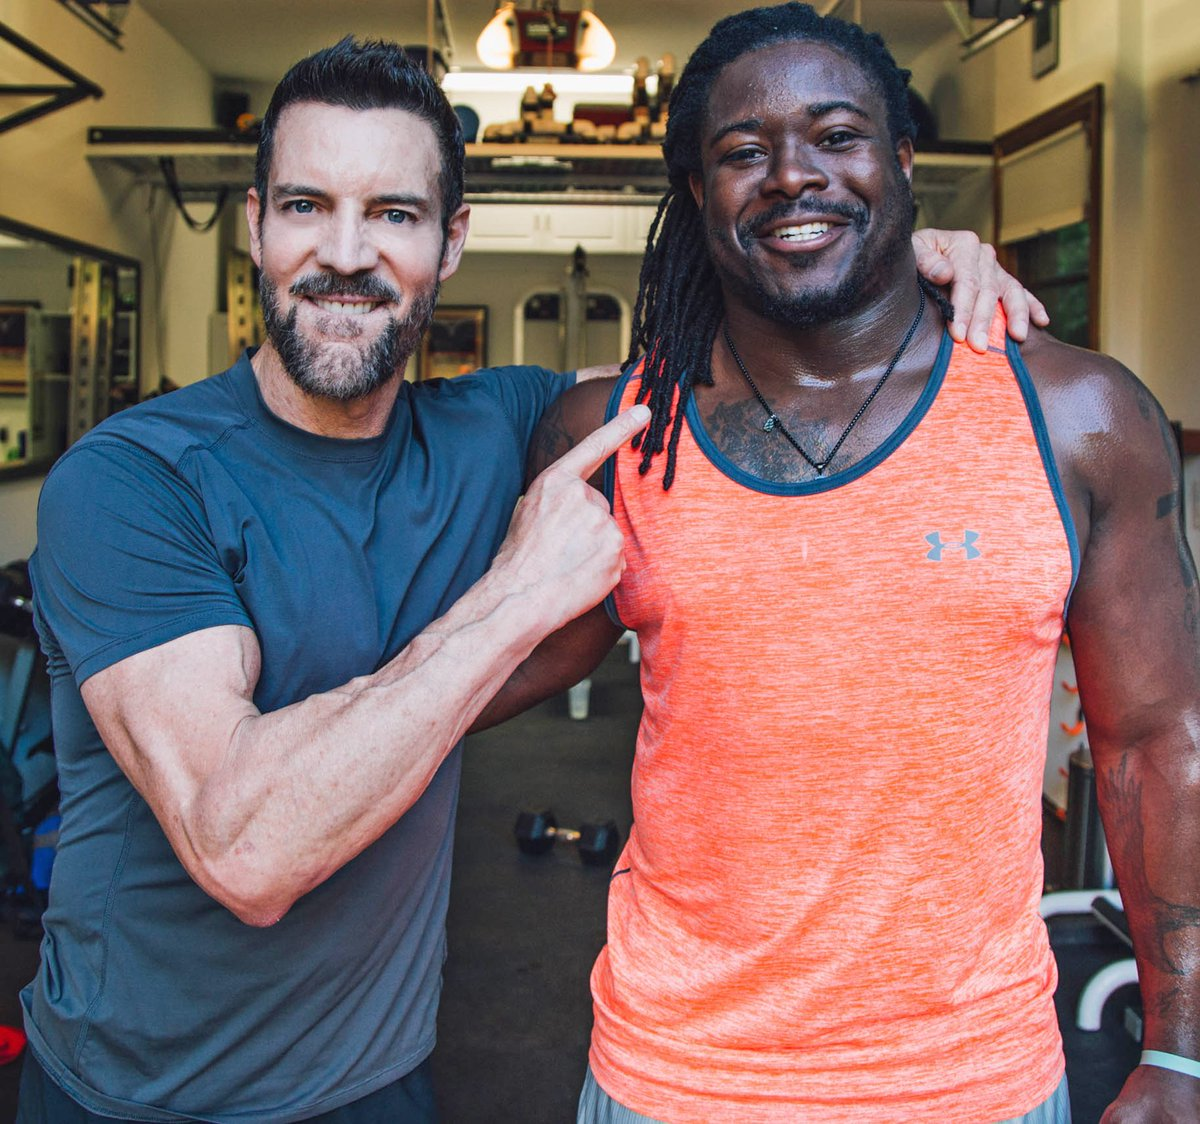 Eddie Lacy Before And After Beachbody on Twitter: ...